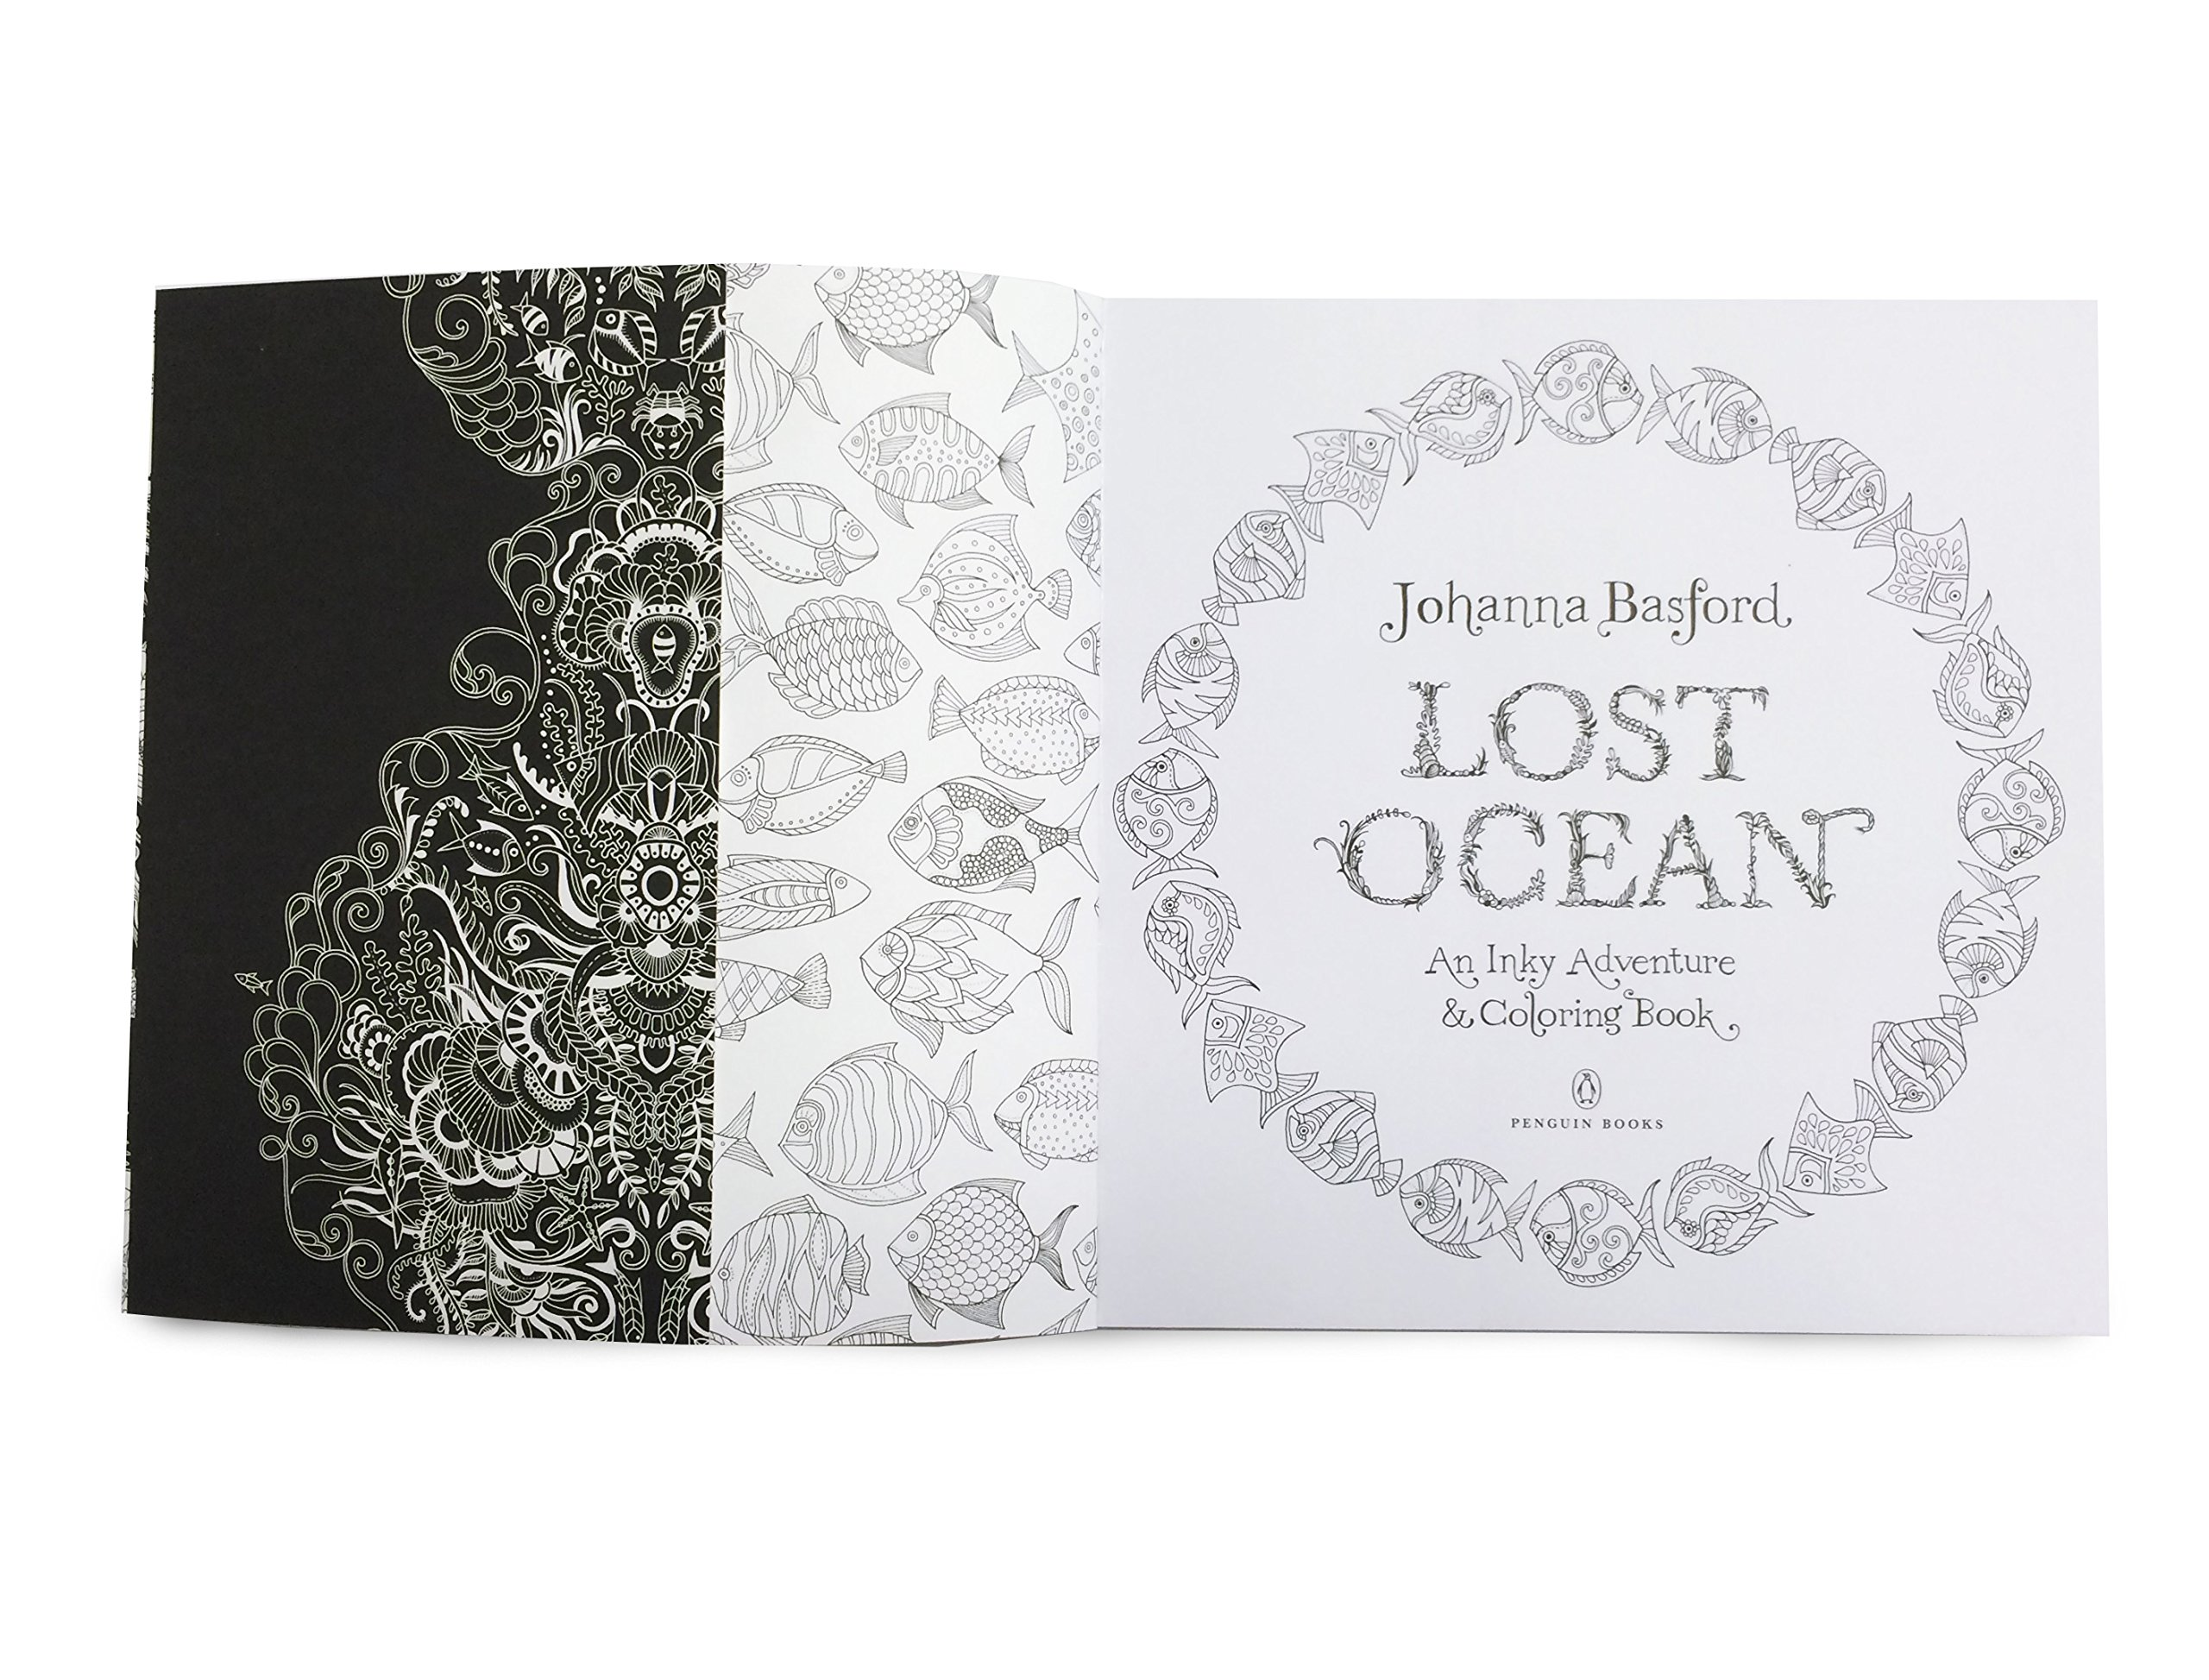 Lost Ocean An Inky Adventure And Coloring Book For Adults Johanna Basford 9780143108993 Books